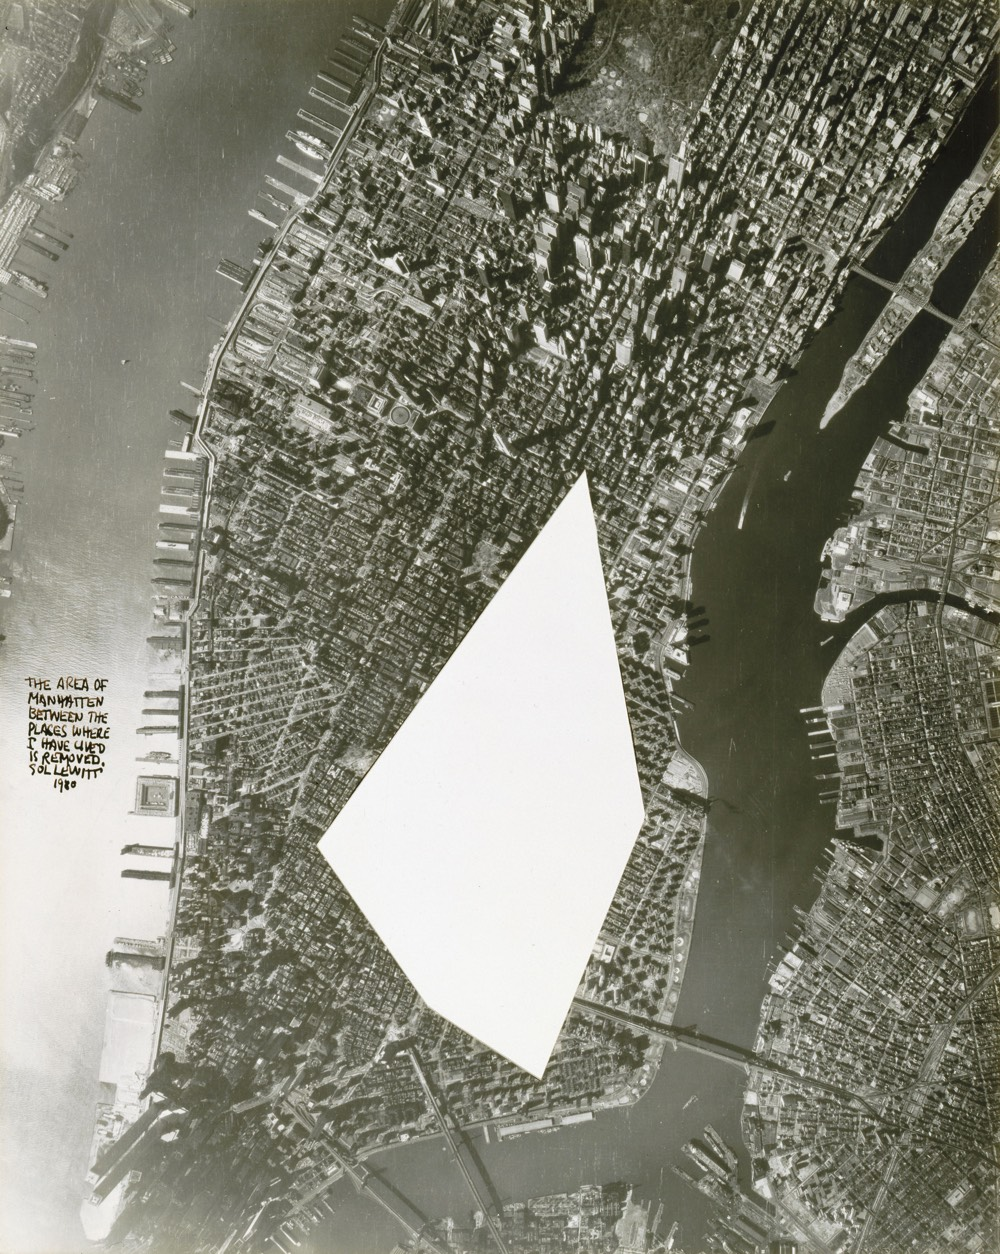 The Area of Manhattan Between the Places I Have Lived Is Removed by Sol LeWitt